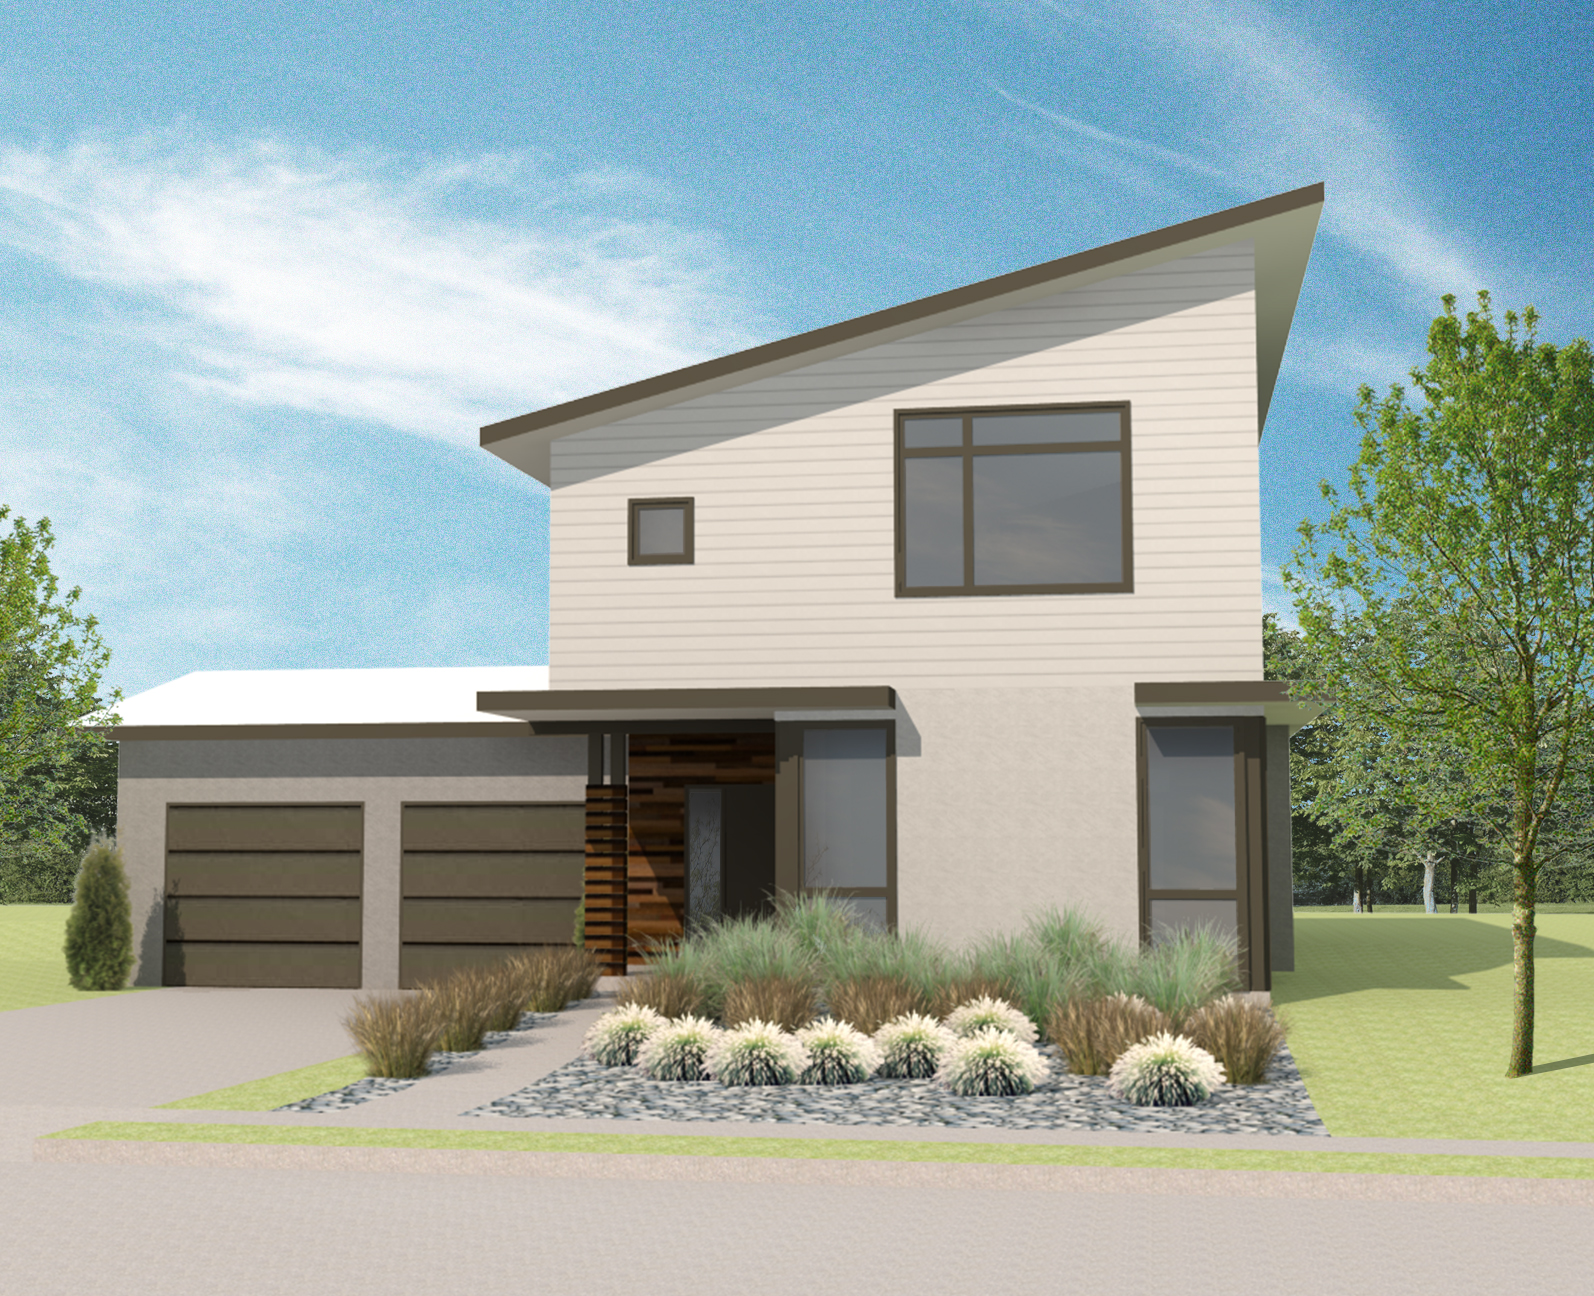 Urban North - House Plan 1